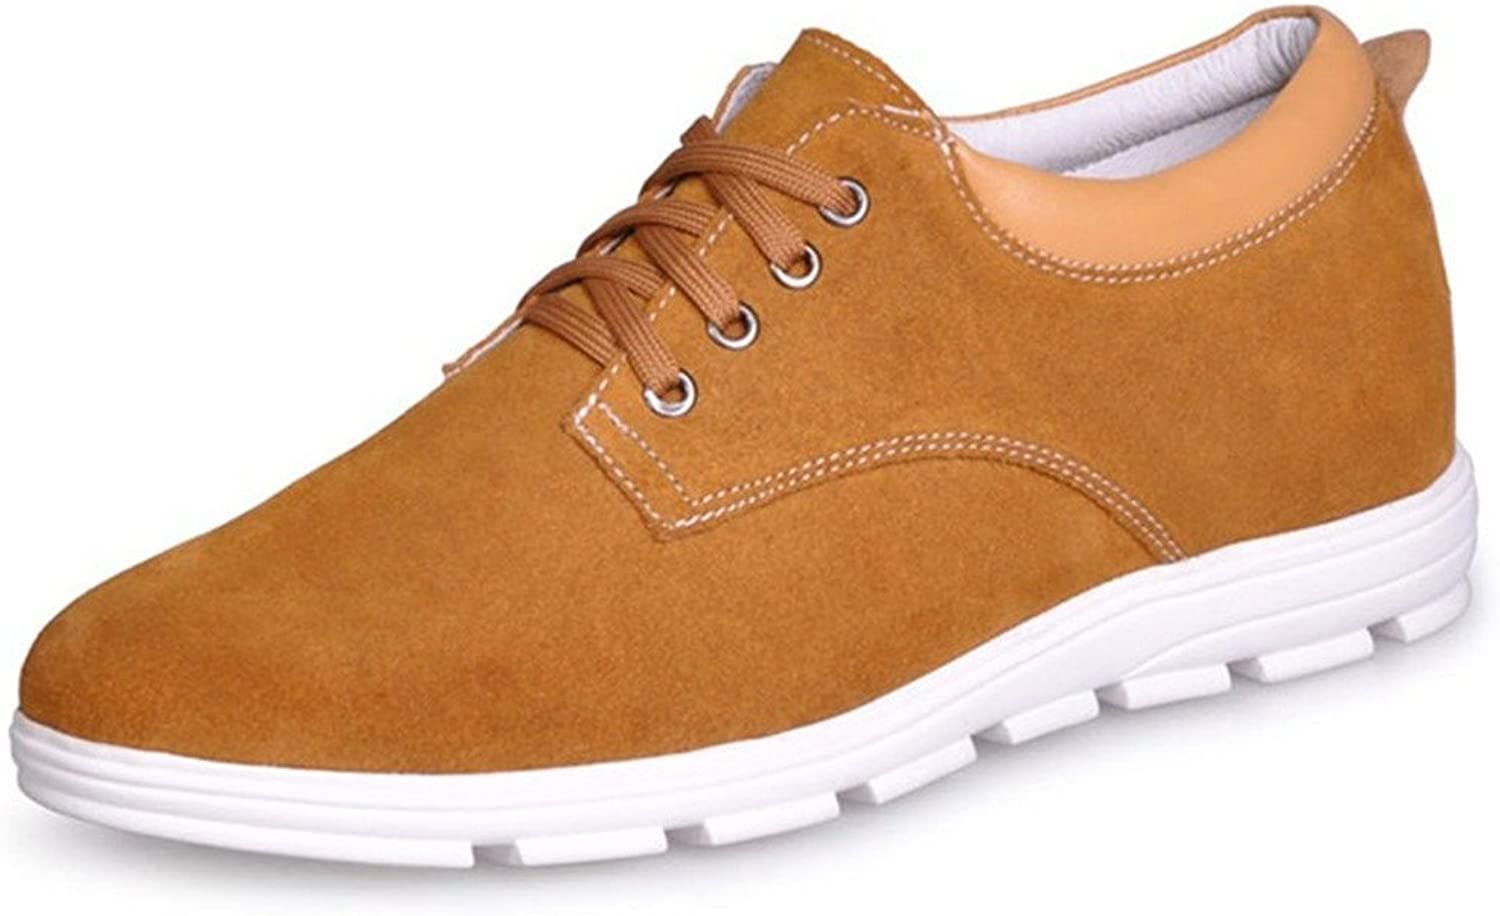 Elevator shoes 1.96 inches Taller-Cow Suede Casual Height Increasing Elevated shoes Men